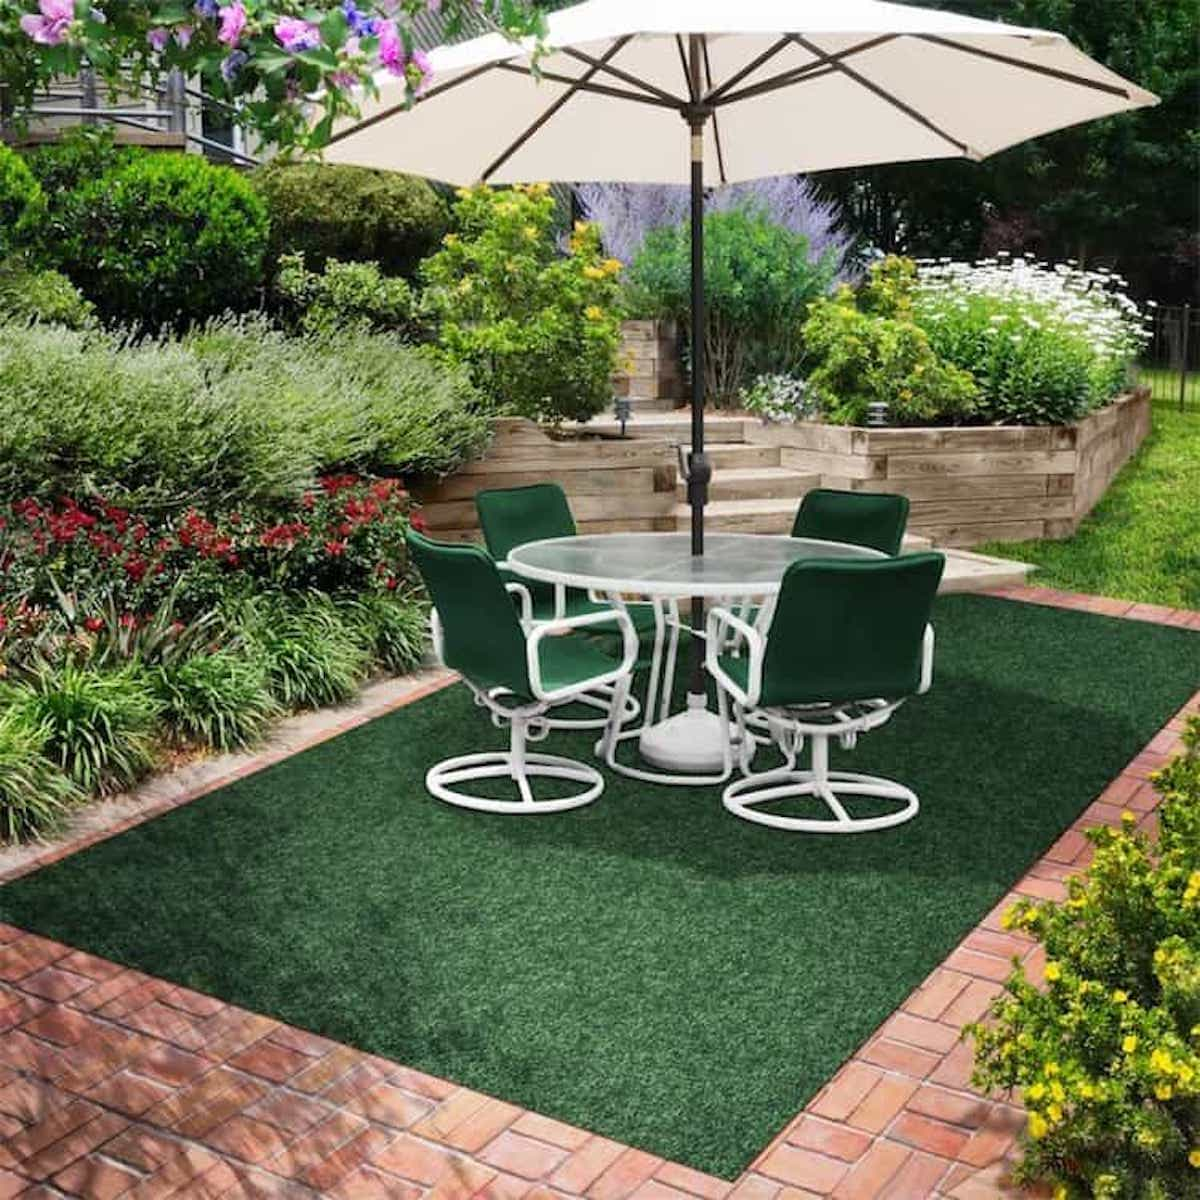 Green Grass Like Outdoor Rugs For Patios (Image 11 of 15)